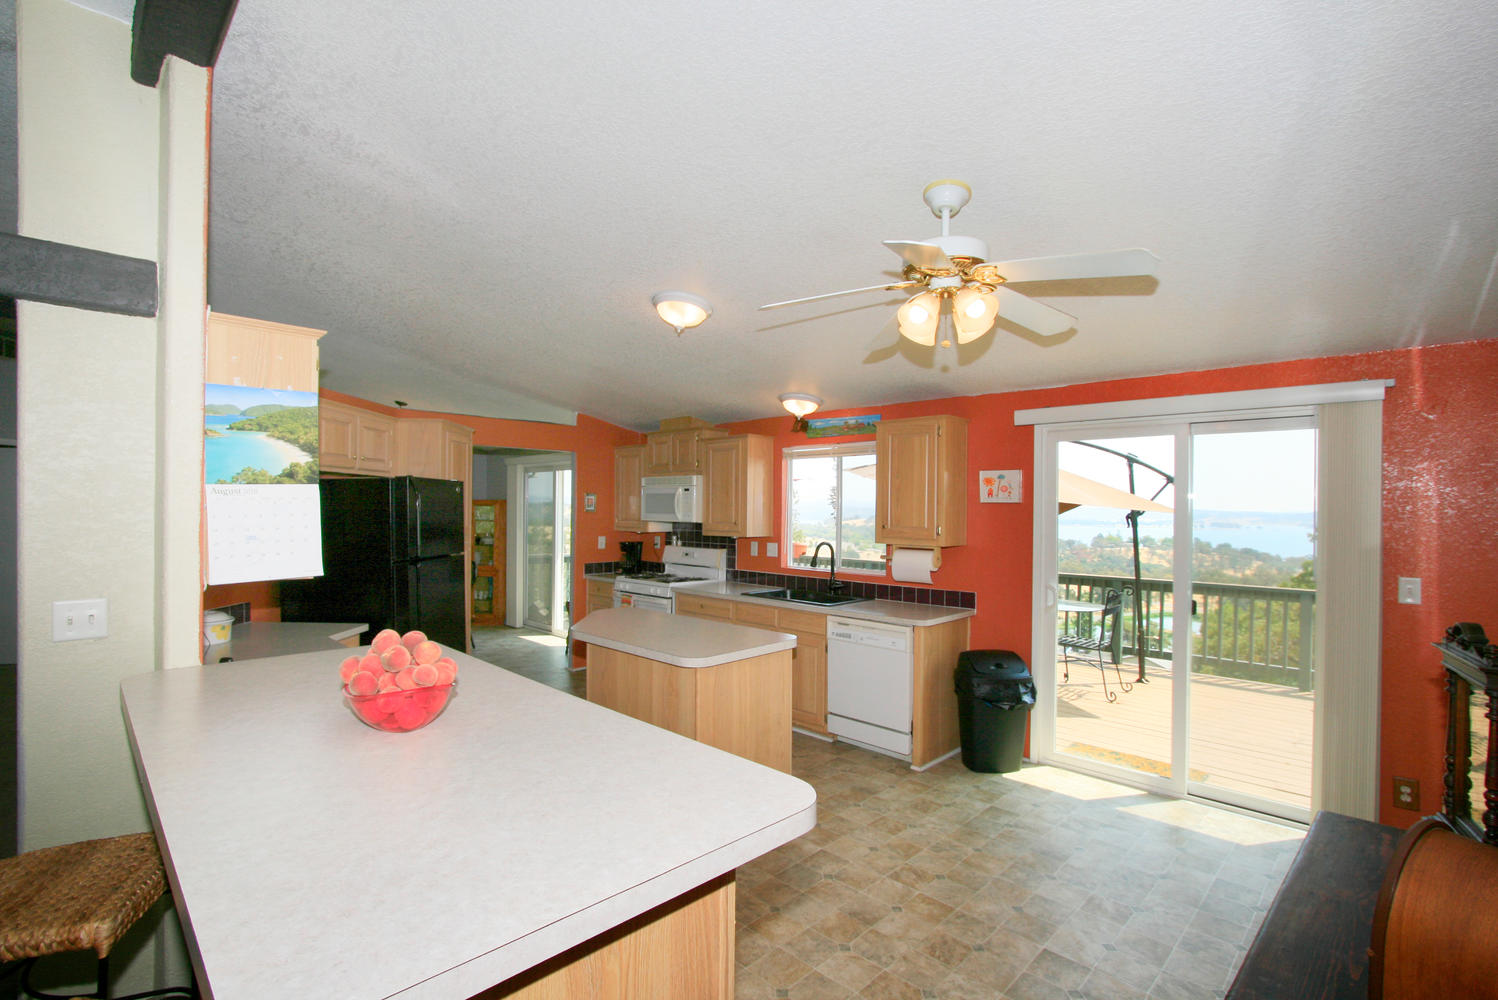 3940 Camanche Pkwy N, Ione, CA 95640